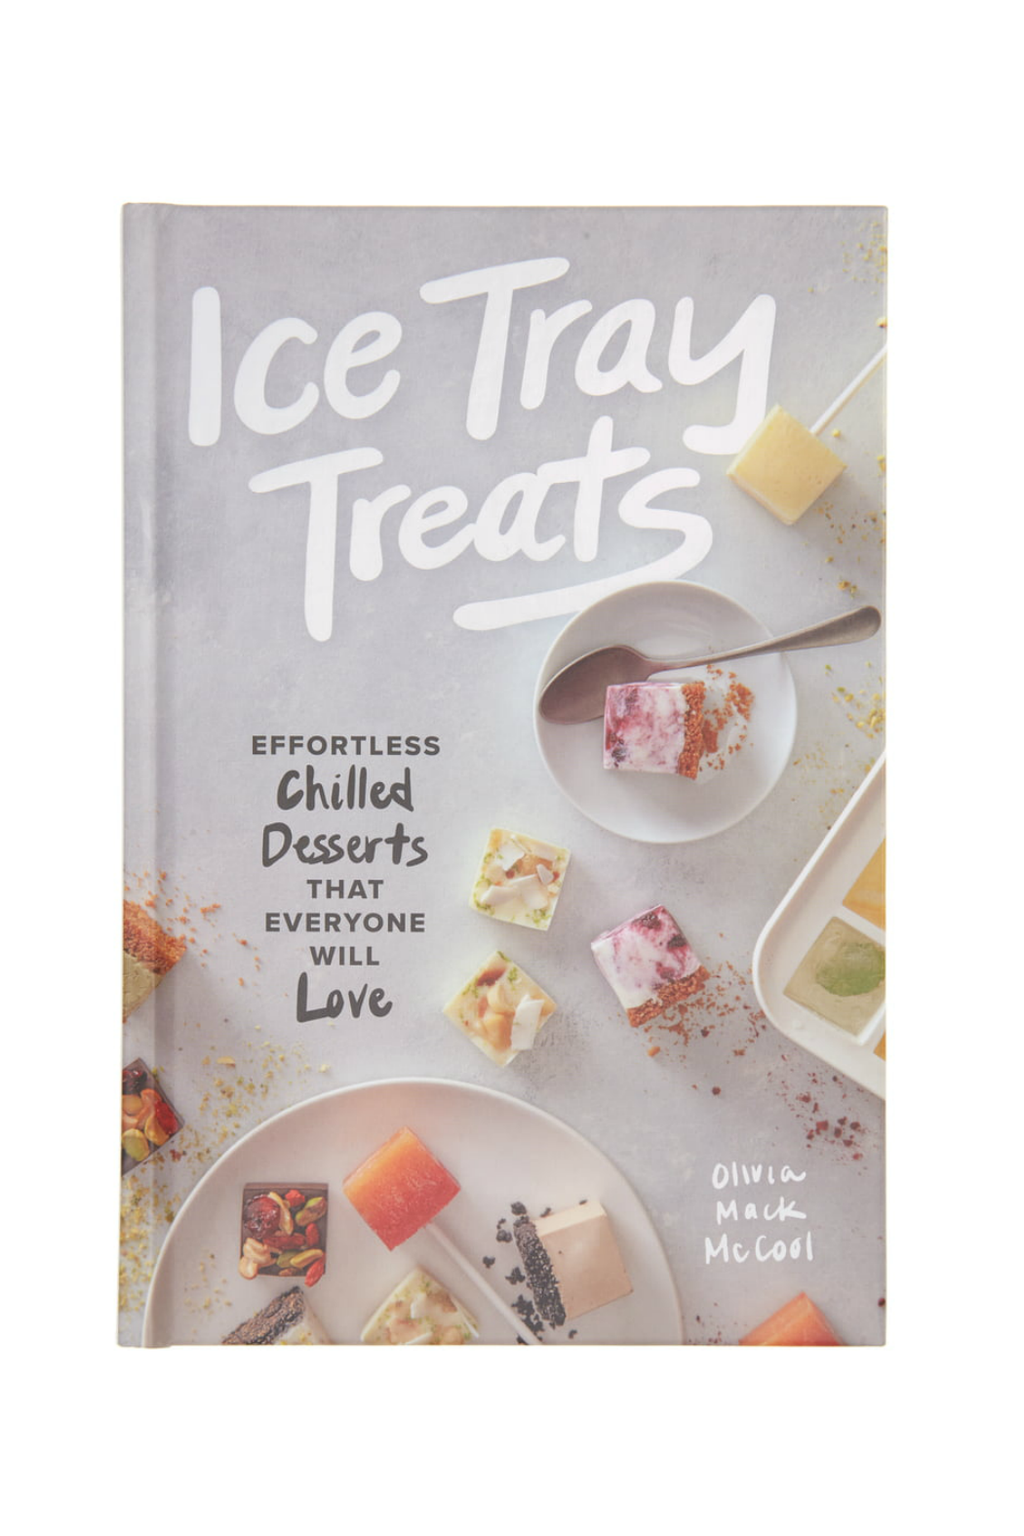 Ice Tray Treats by Olivia Mack McCool